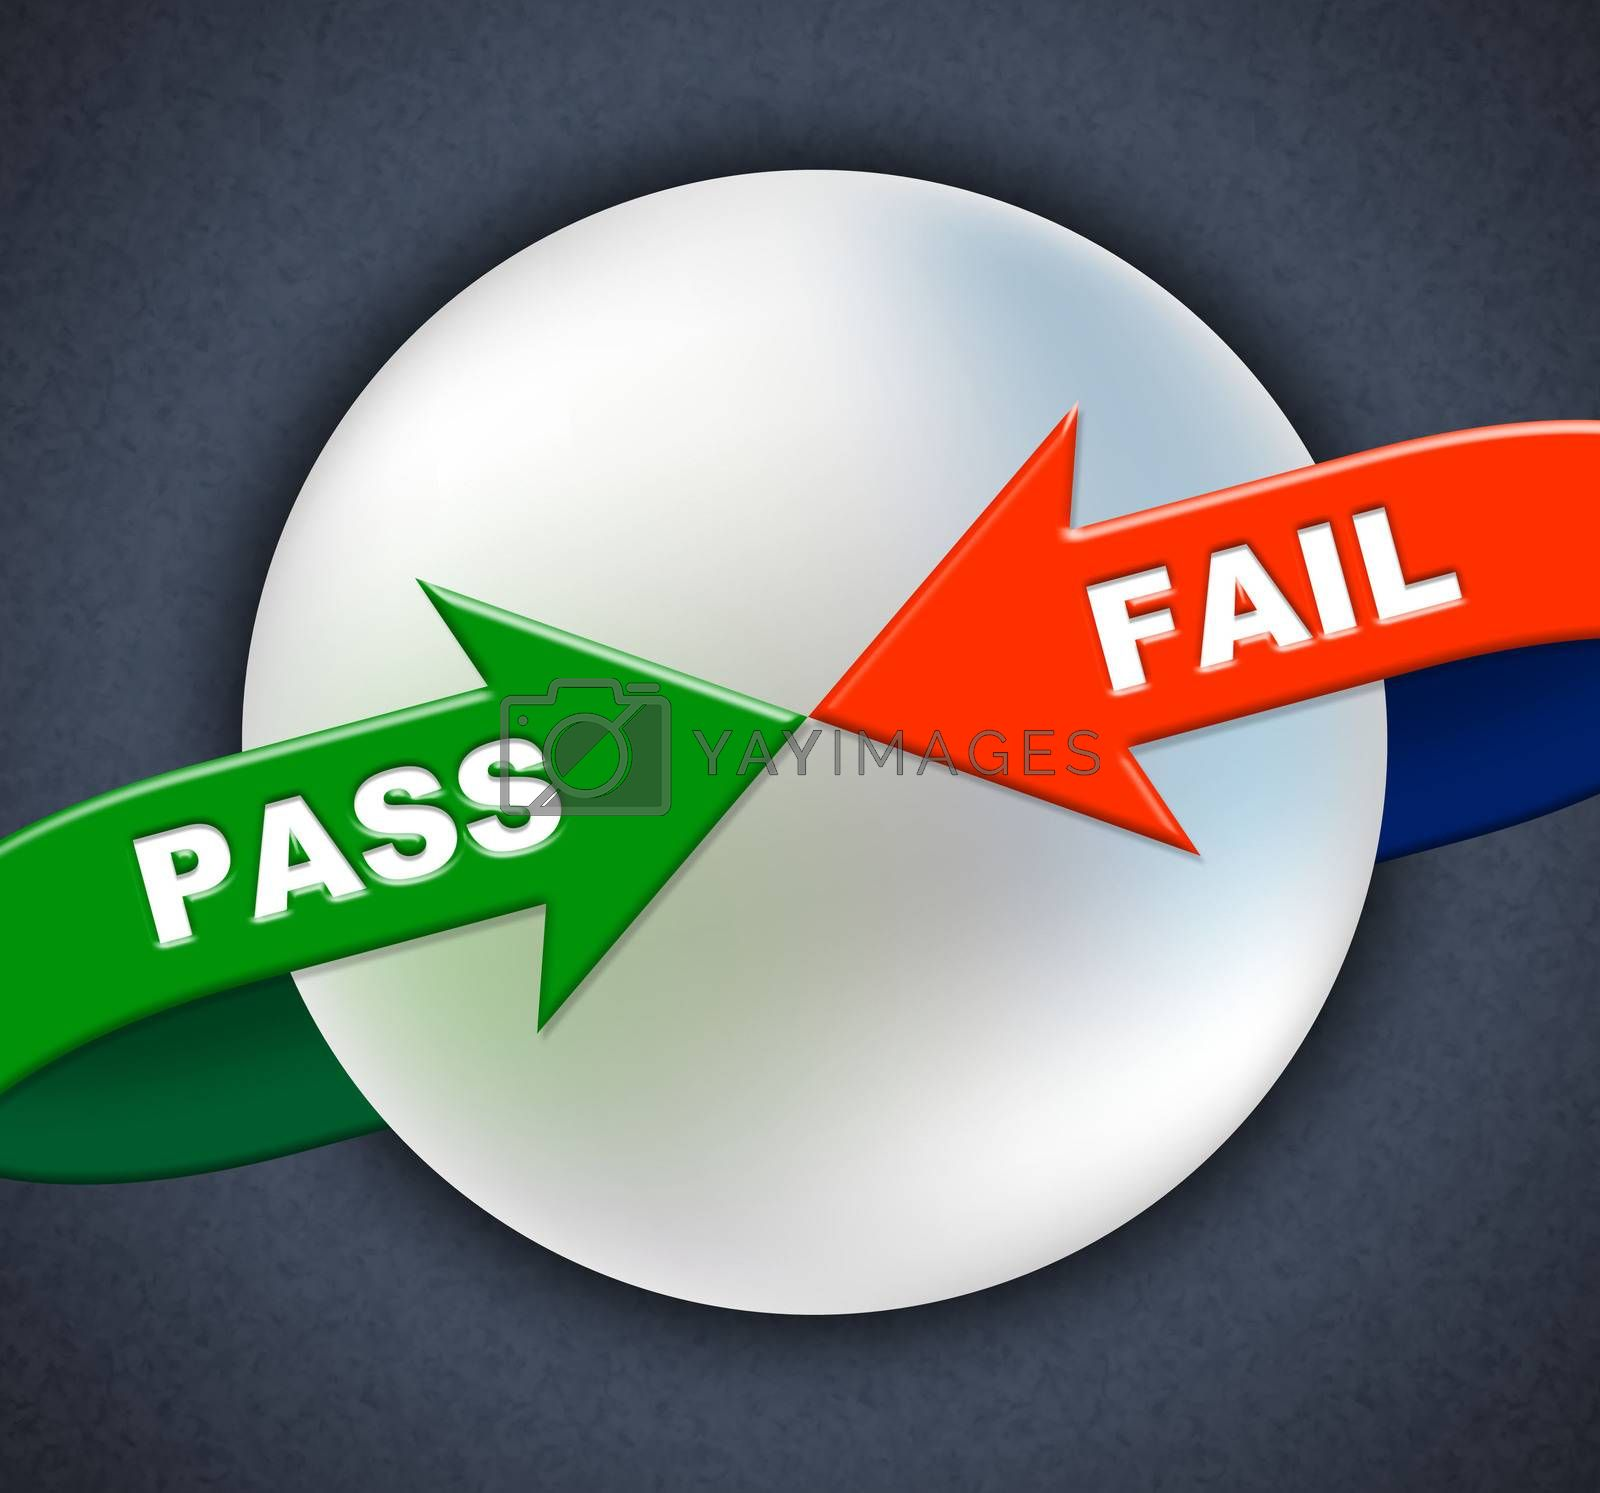 Pass Fail Arrows Shows Ratified Failure And Passed by stuartmiles